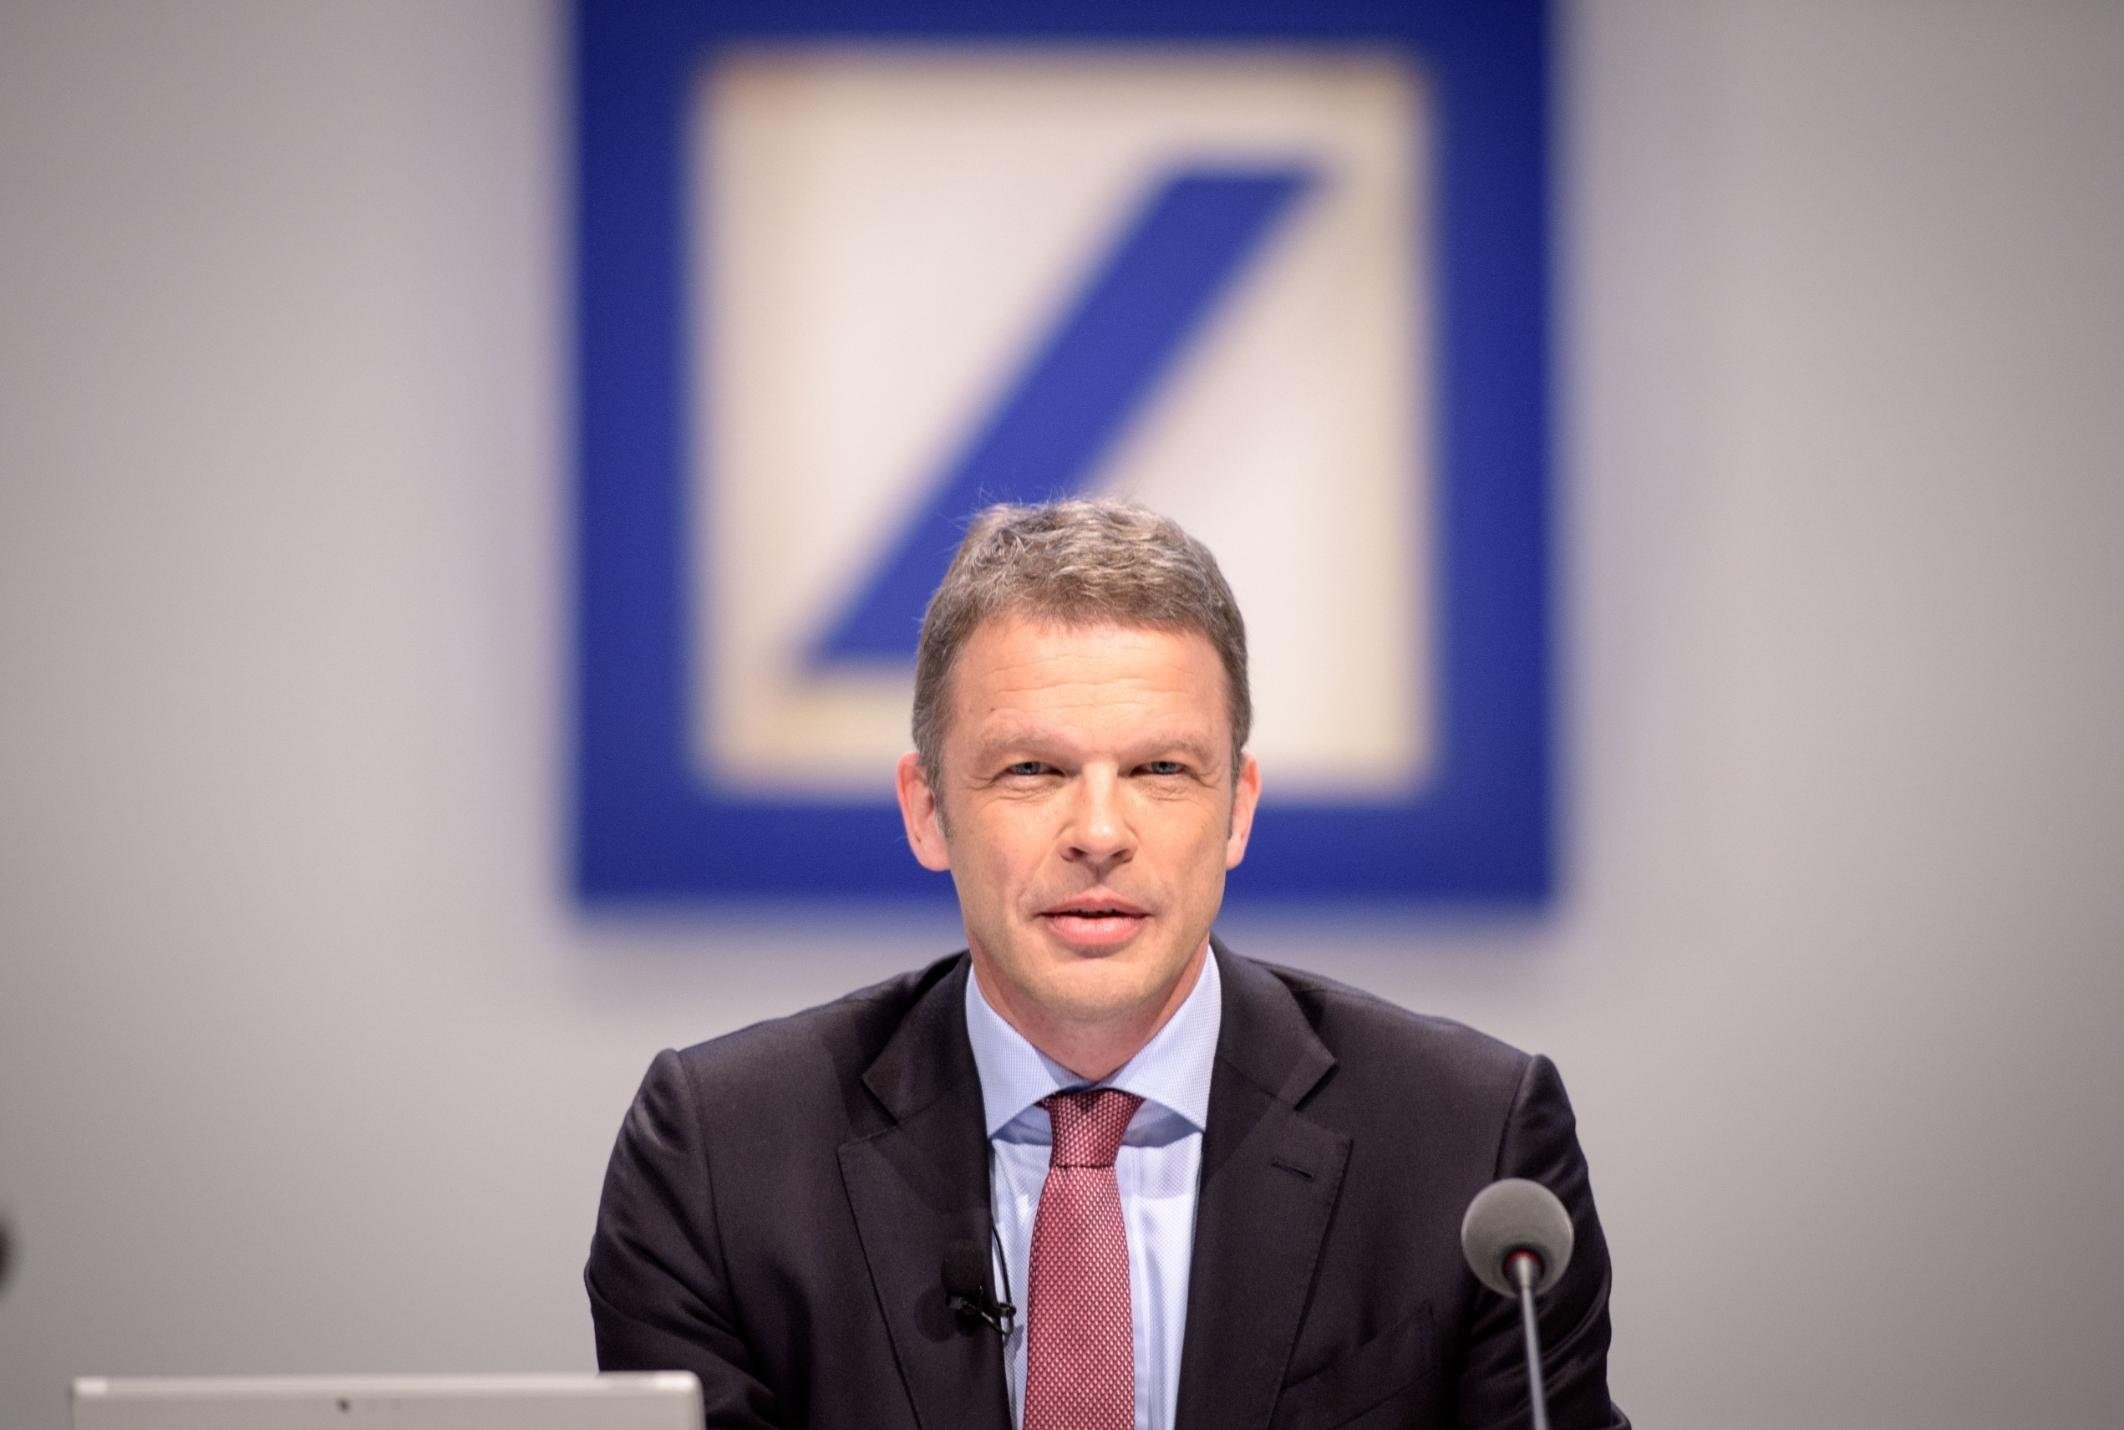 Deutsche Bank Q2 results top estimates 'considerably'